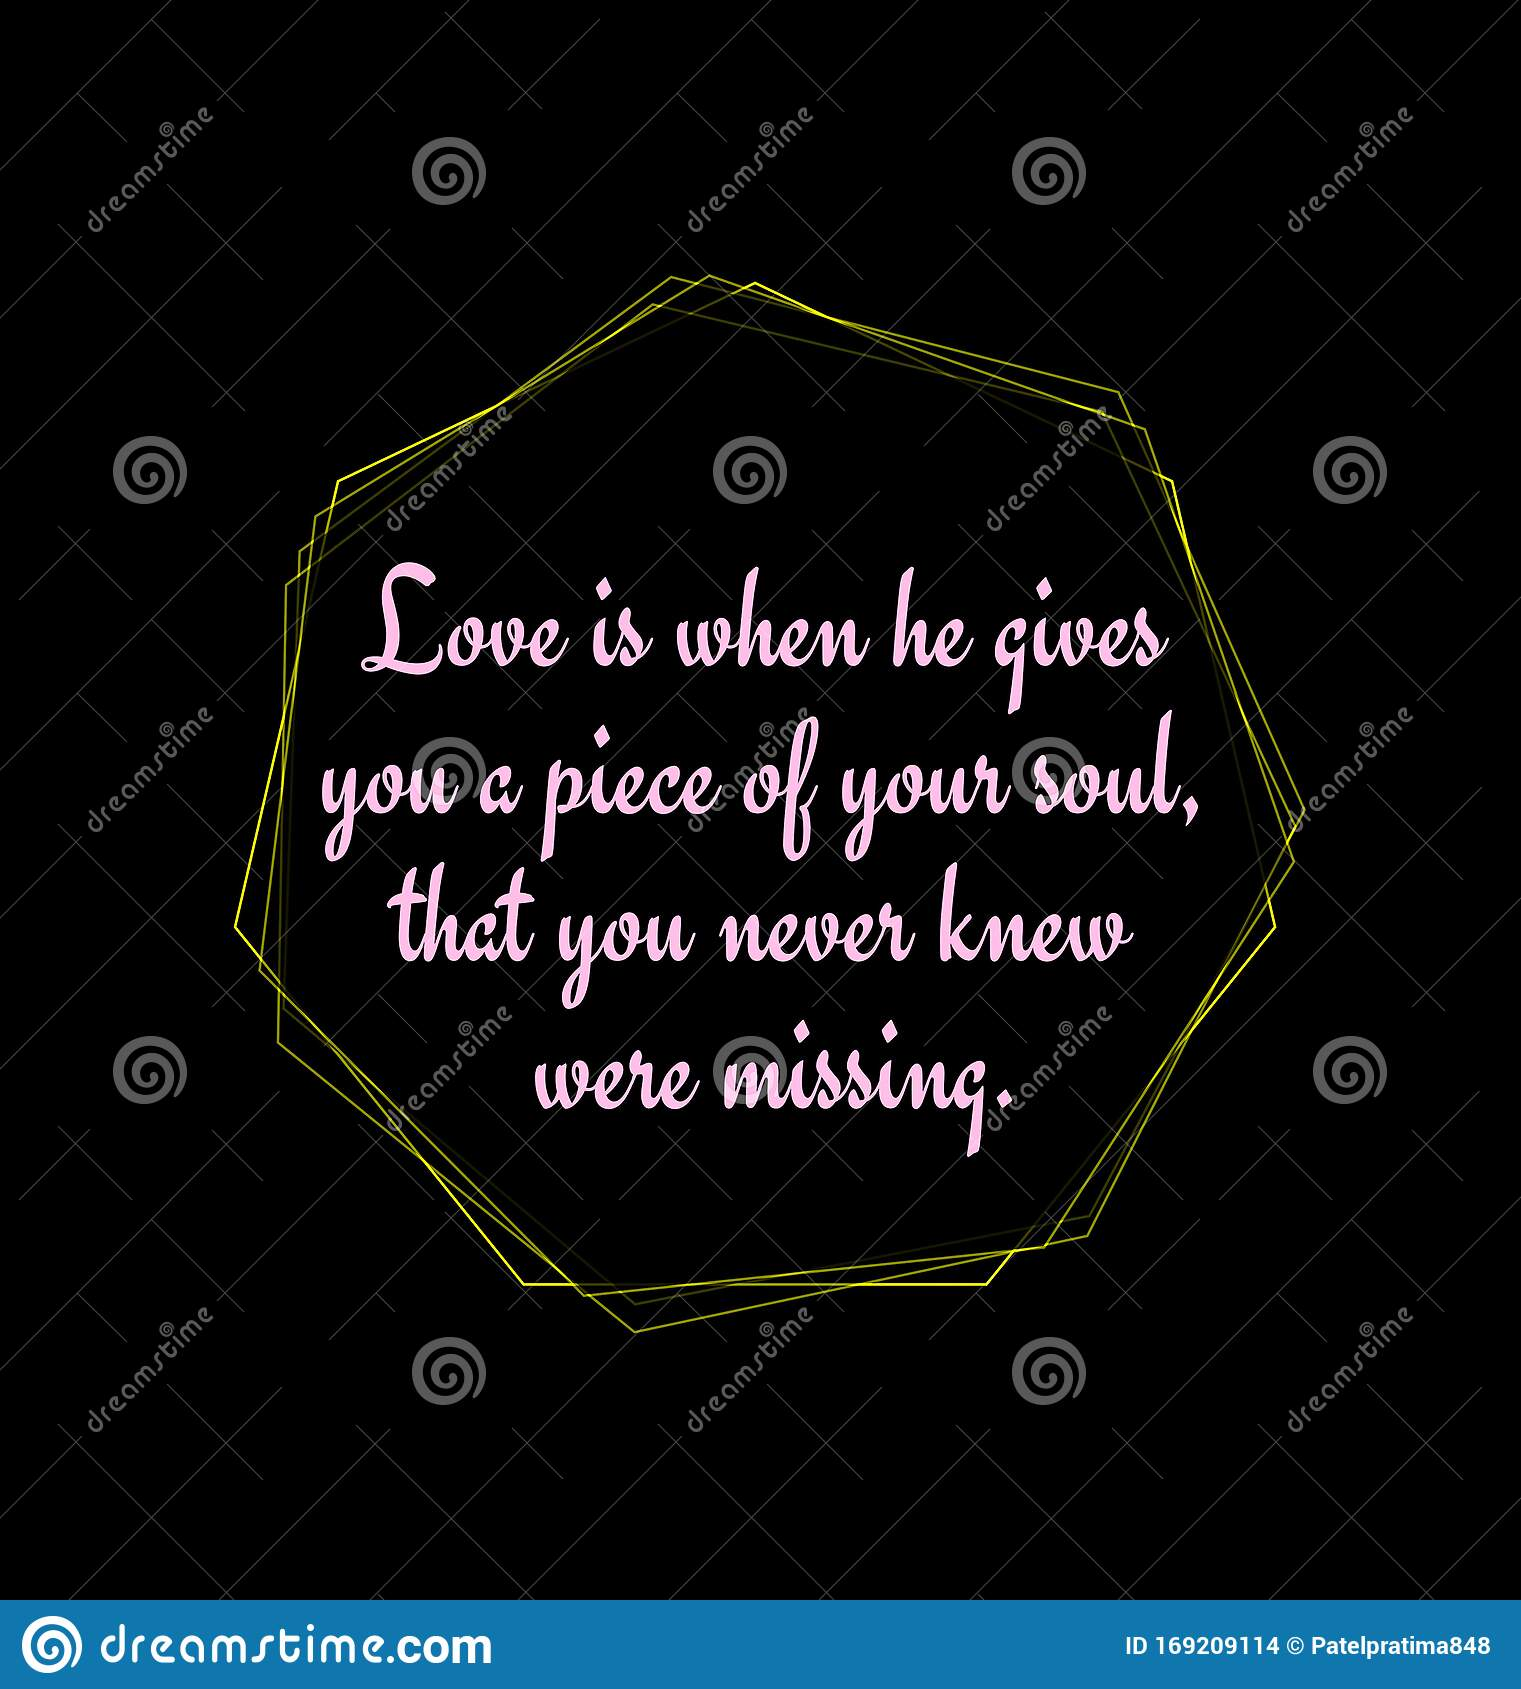 love quotes written on abstract black background yellow geometric